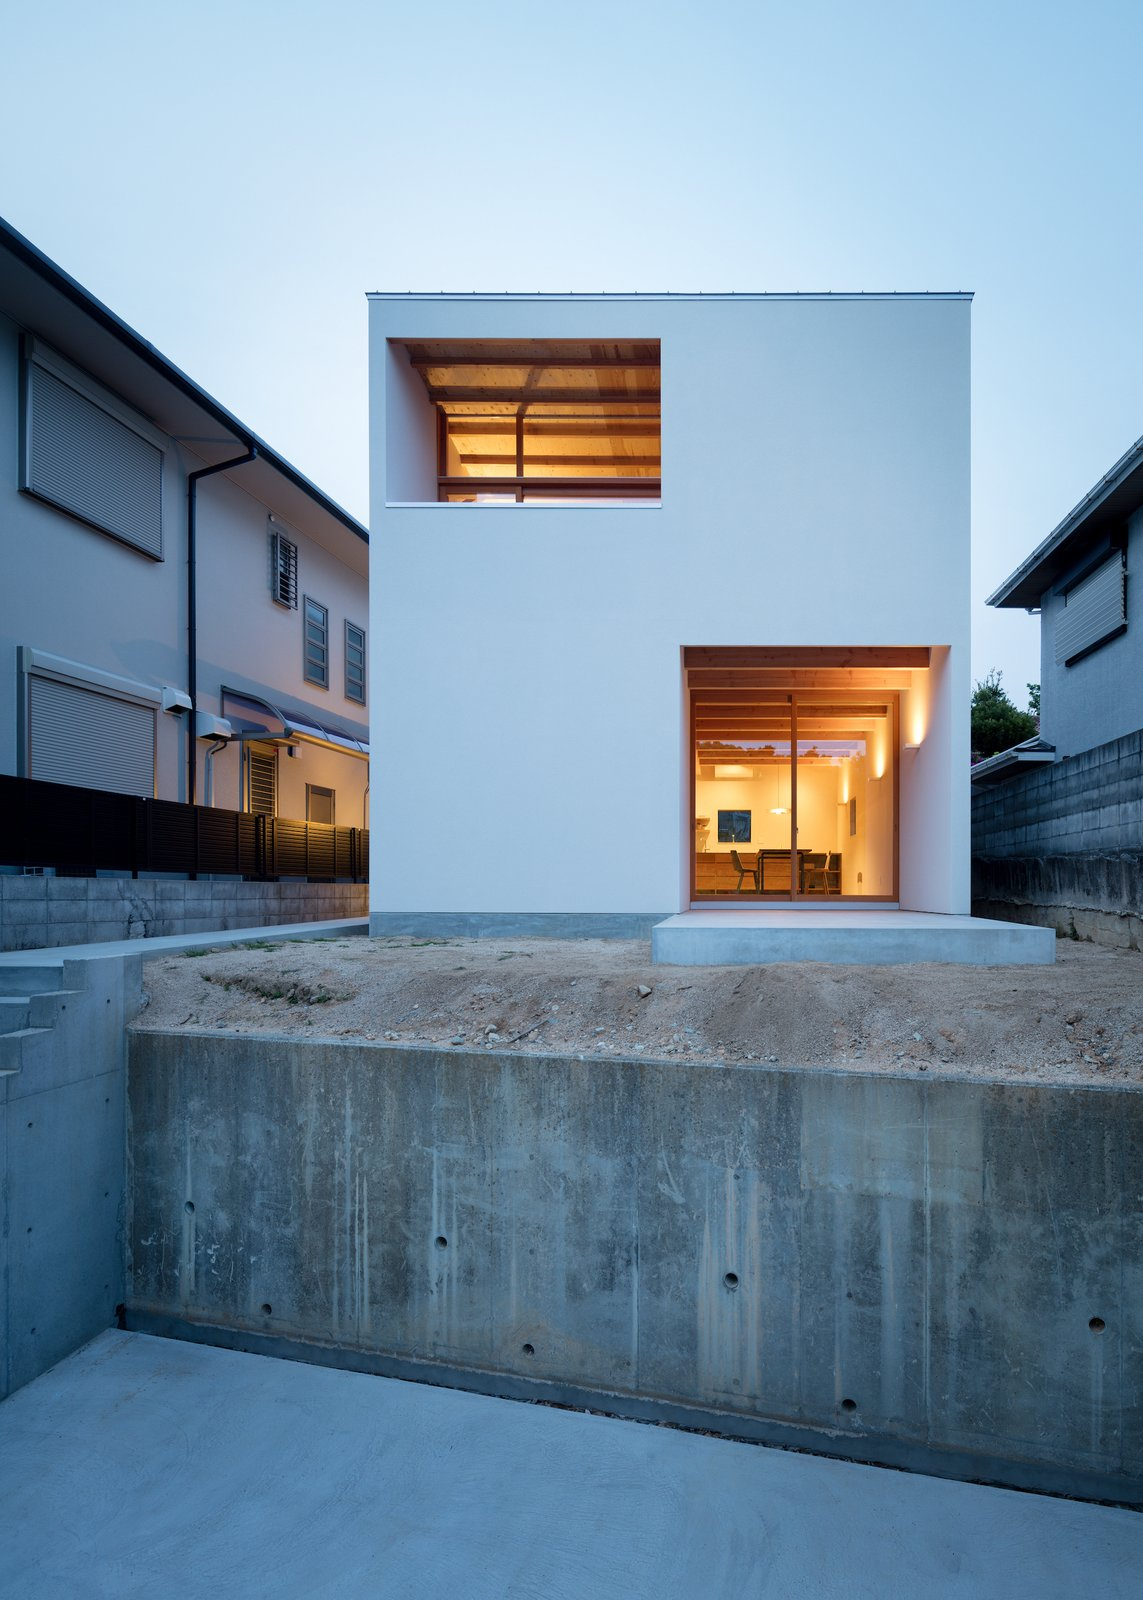 Photo 3 of 6 in House in Mikage by SIDES CORE